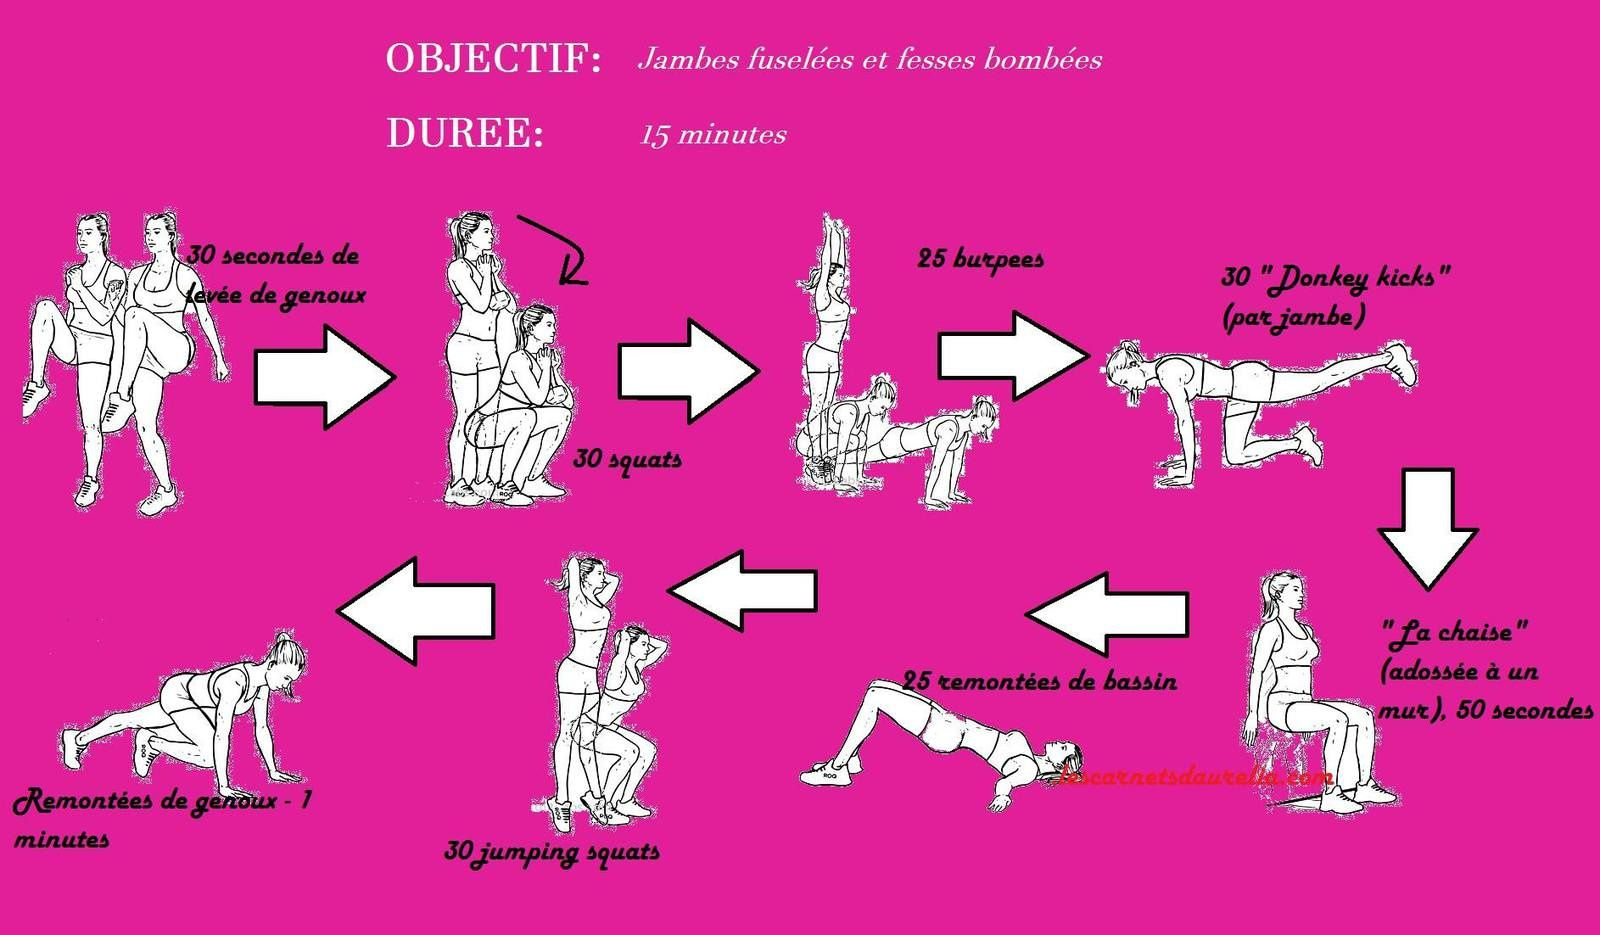 exercices pour jambes et fesses mon grimoire. Black Bedroom Furniture Sets. Home Design Ideas